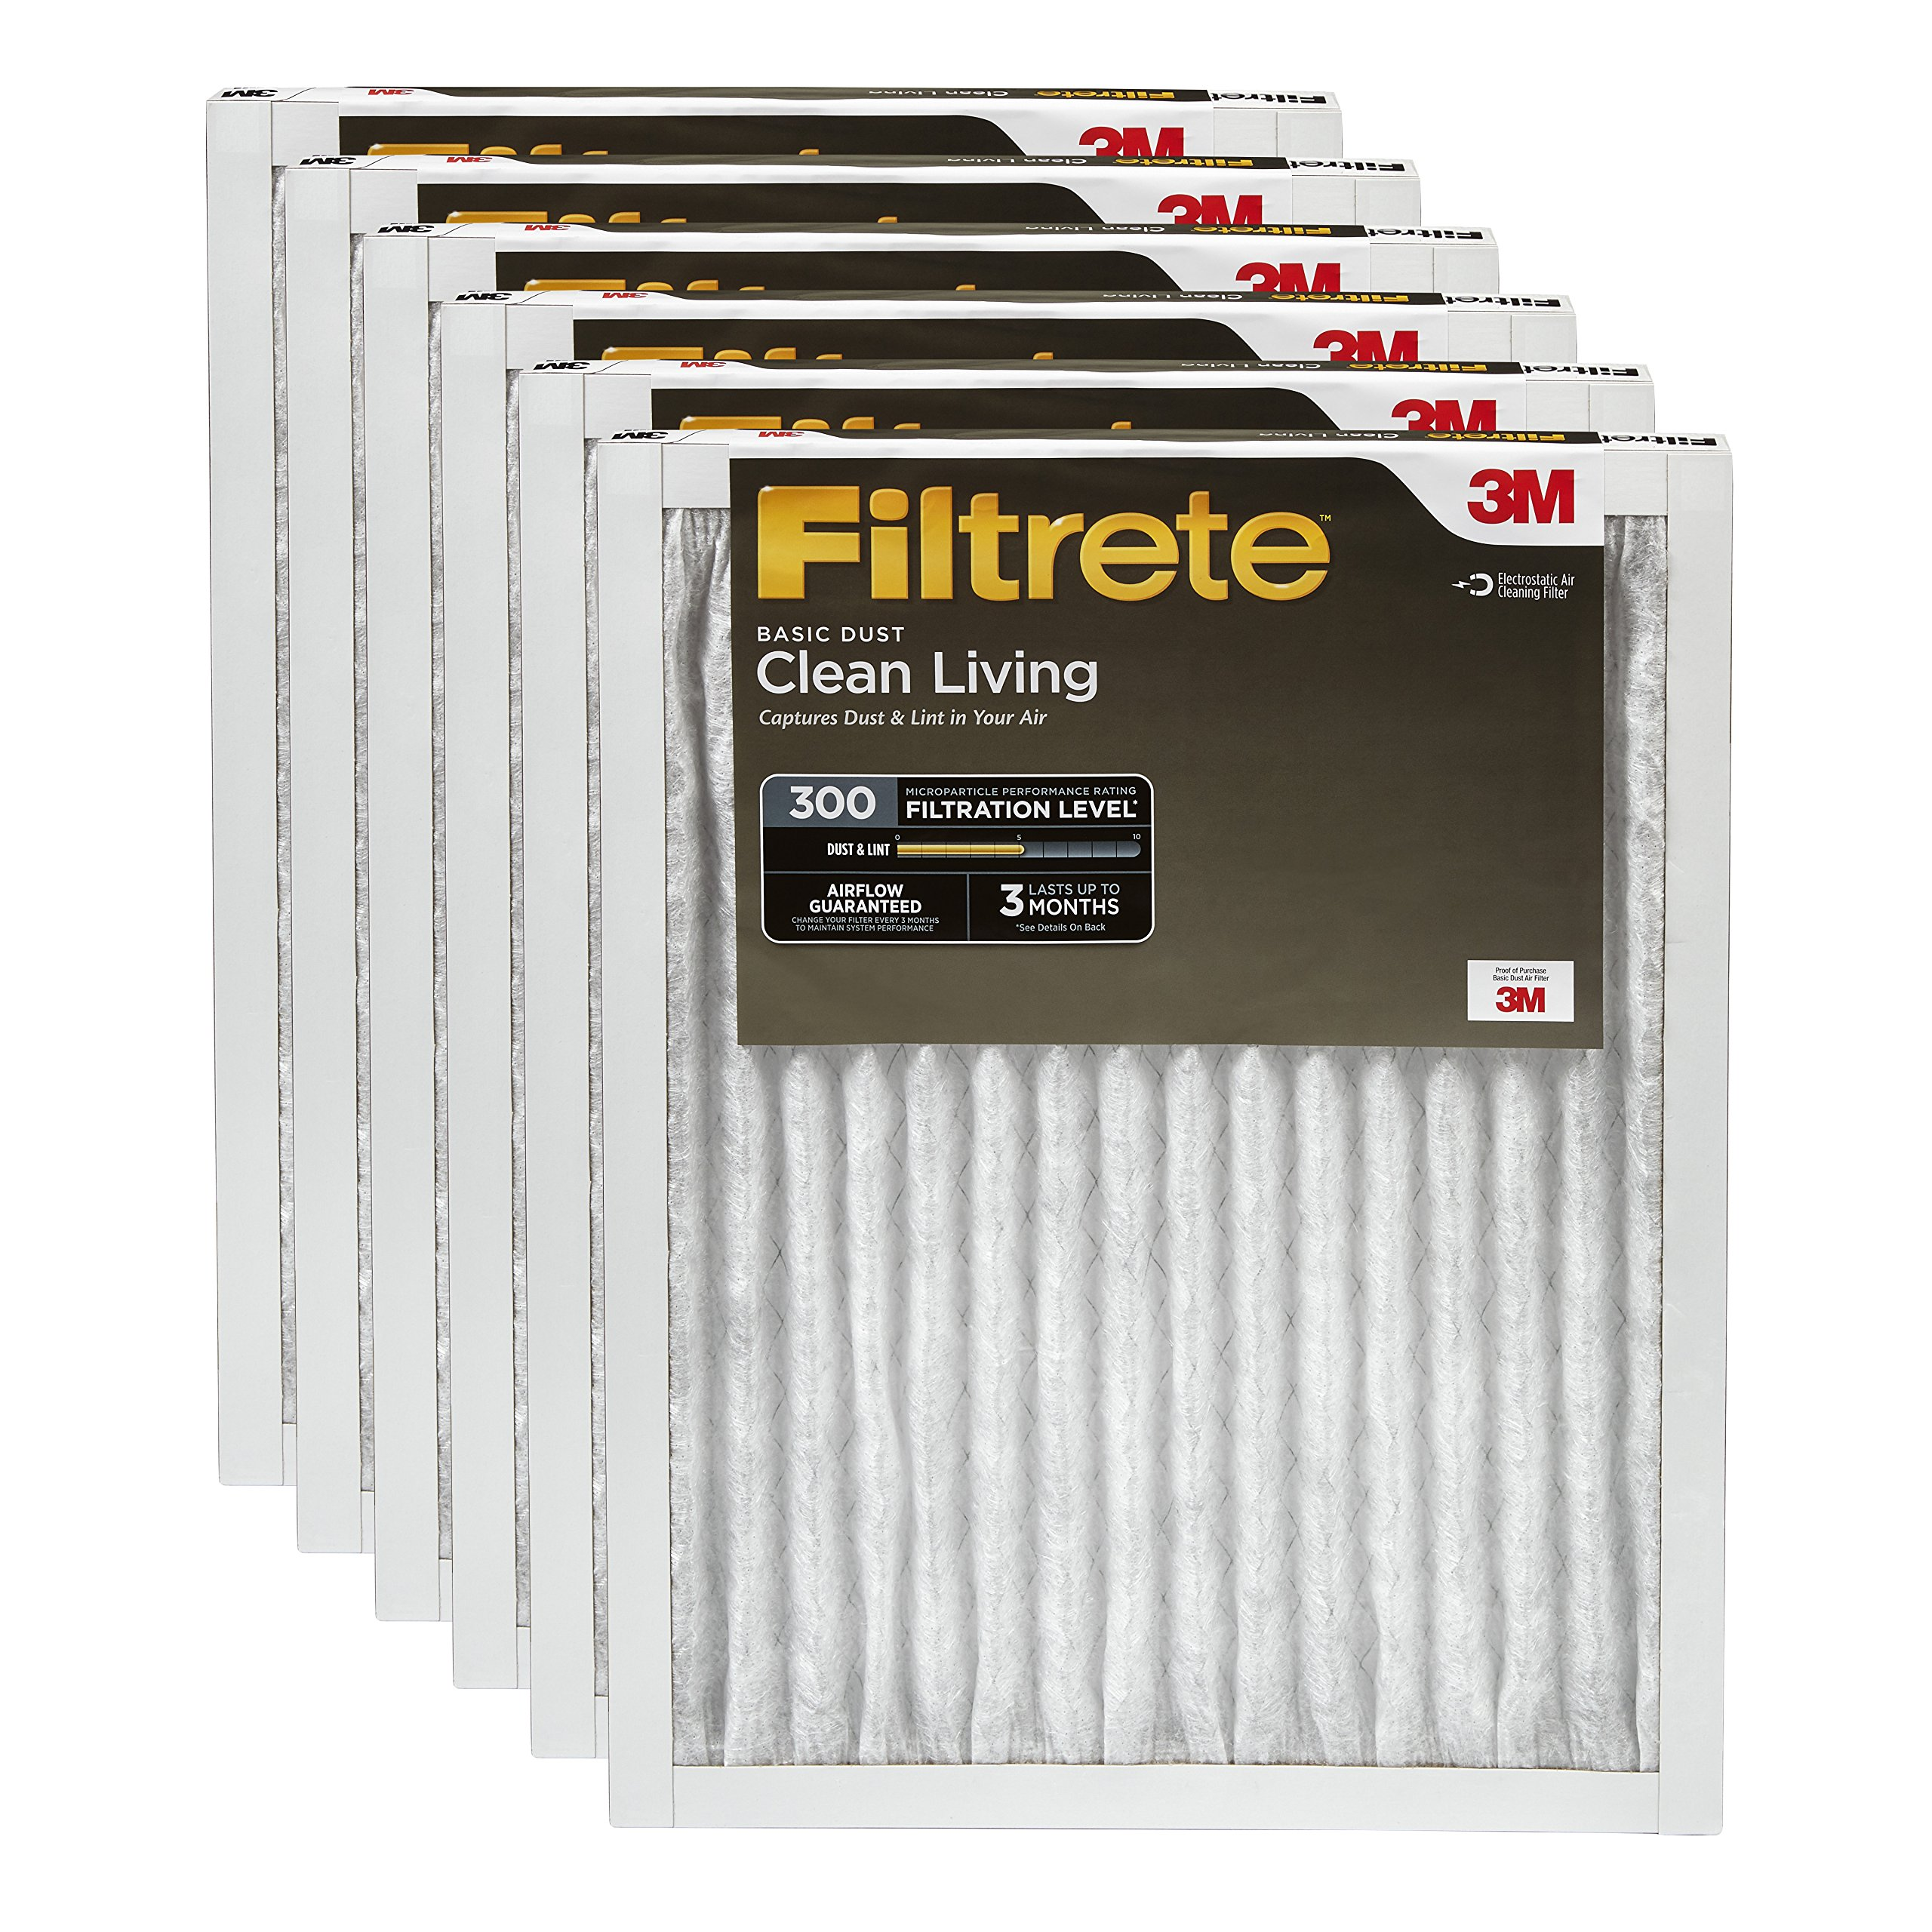 Filtrete Clean Living Basic Dust AC Furnace Air Filter, MPR 300, 14 x 24 x 1-Inches, 6-Pack